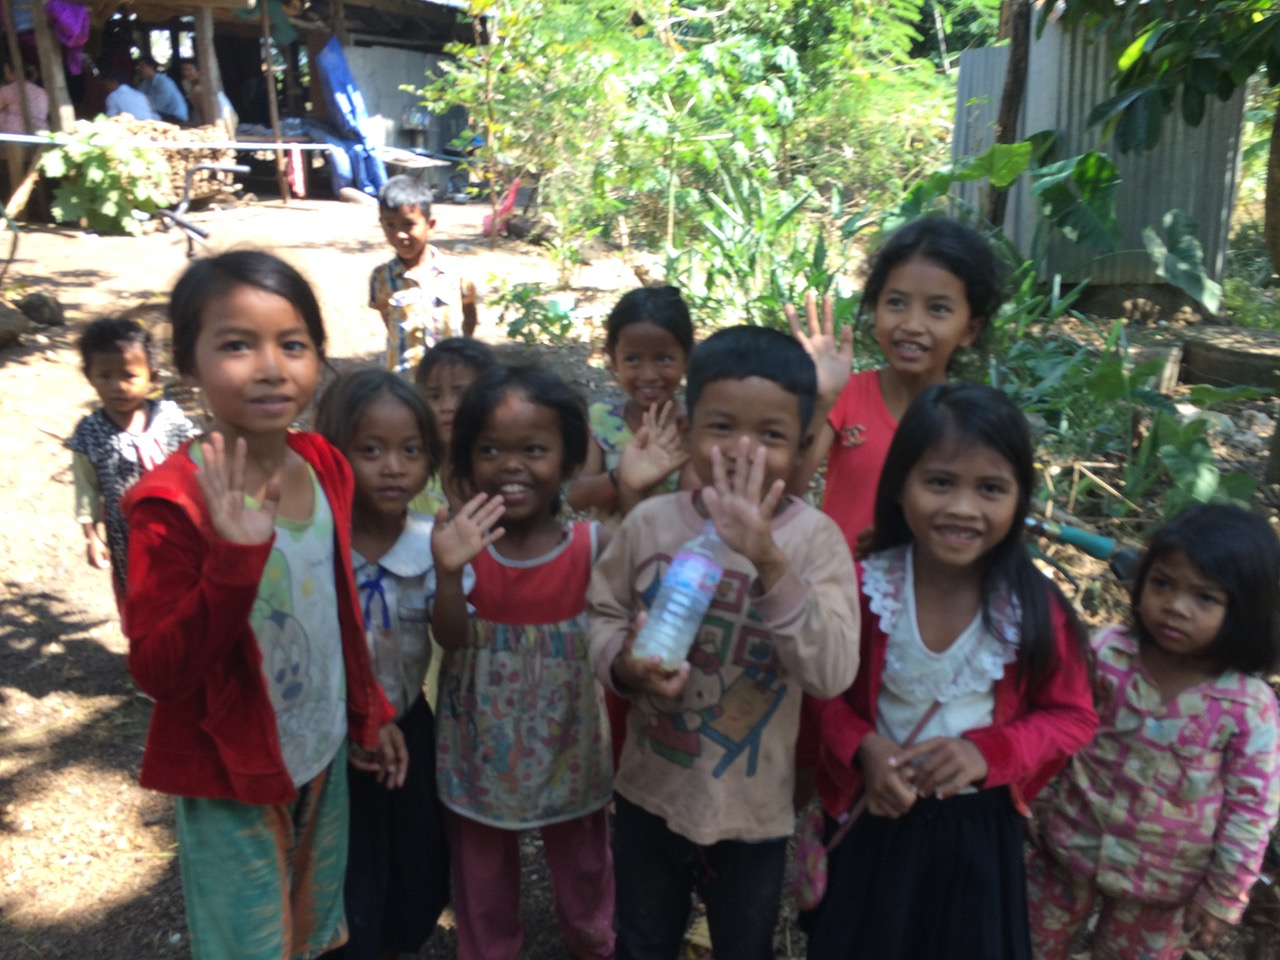 Cambodian Village Children Waving